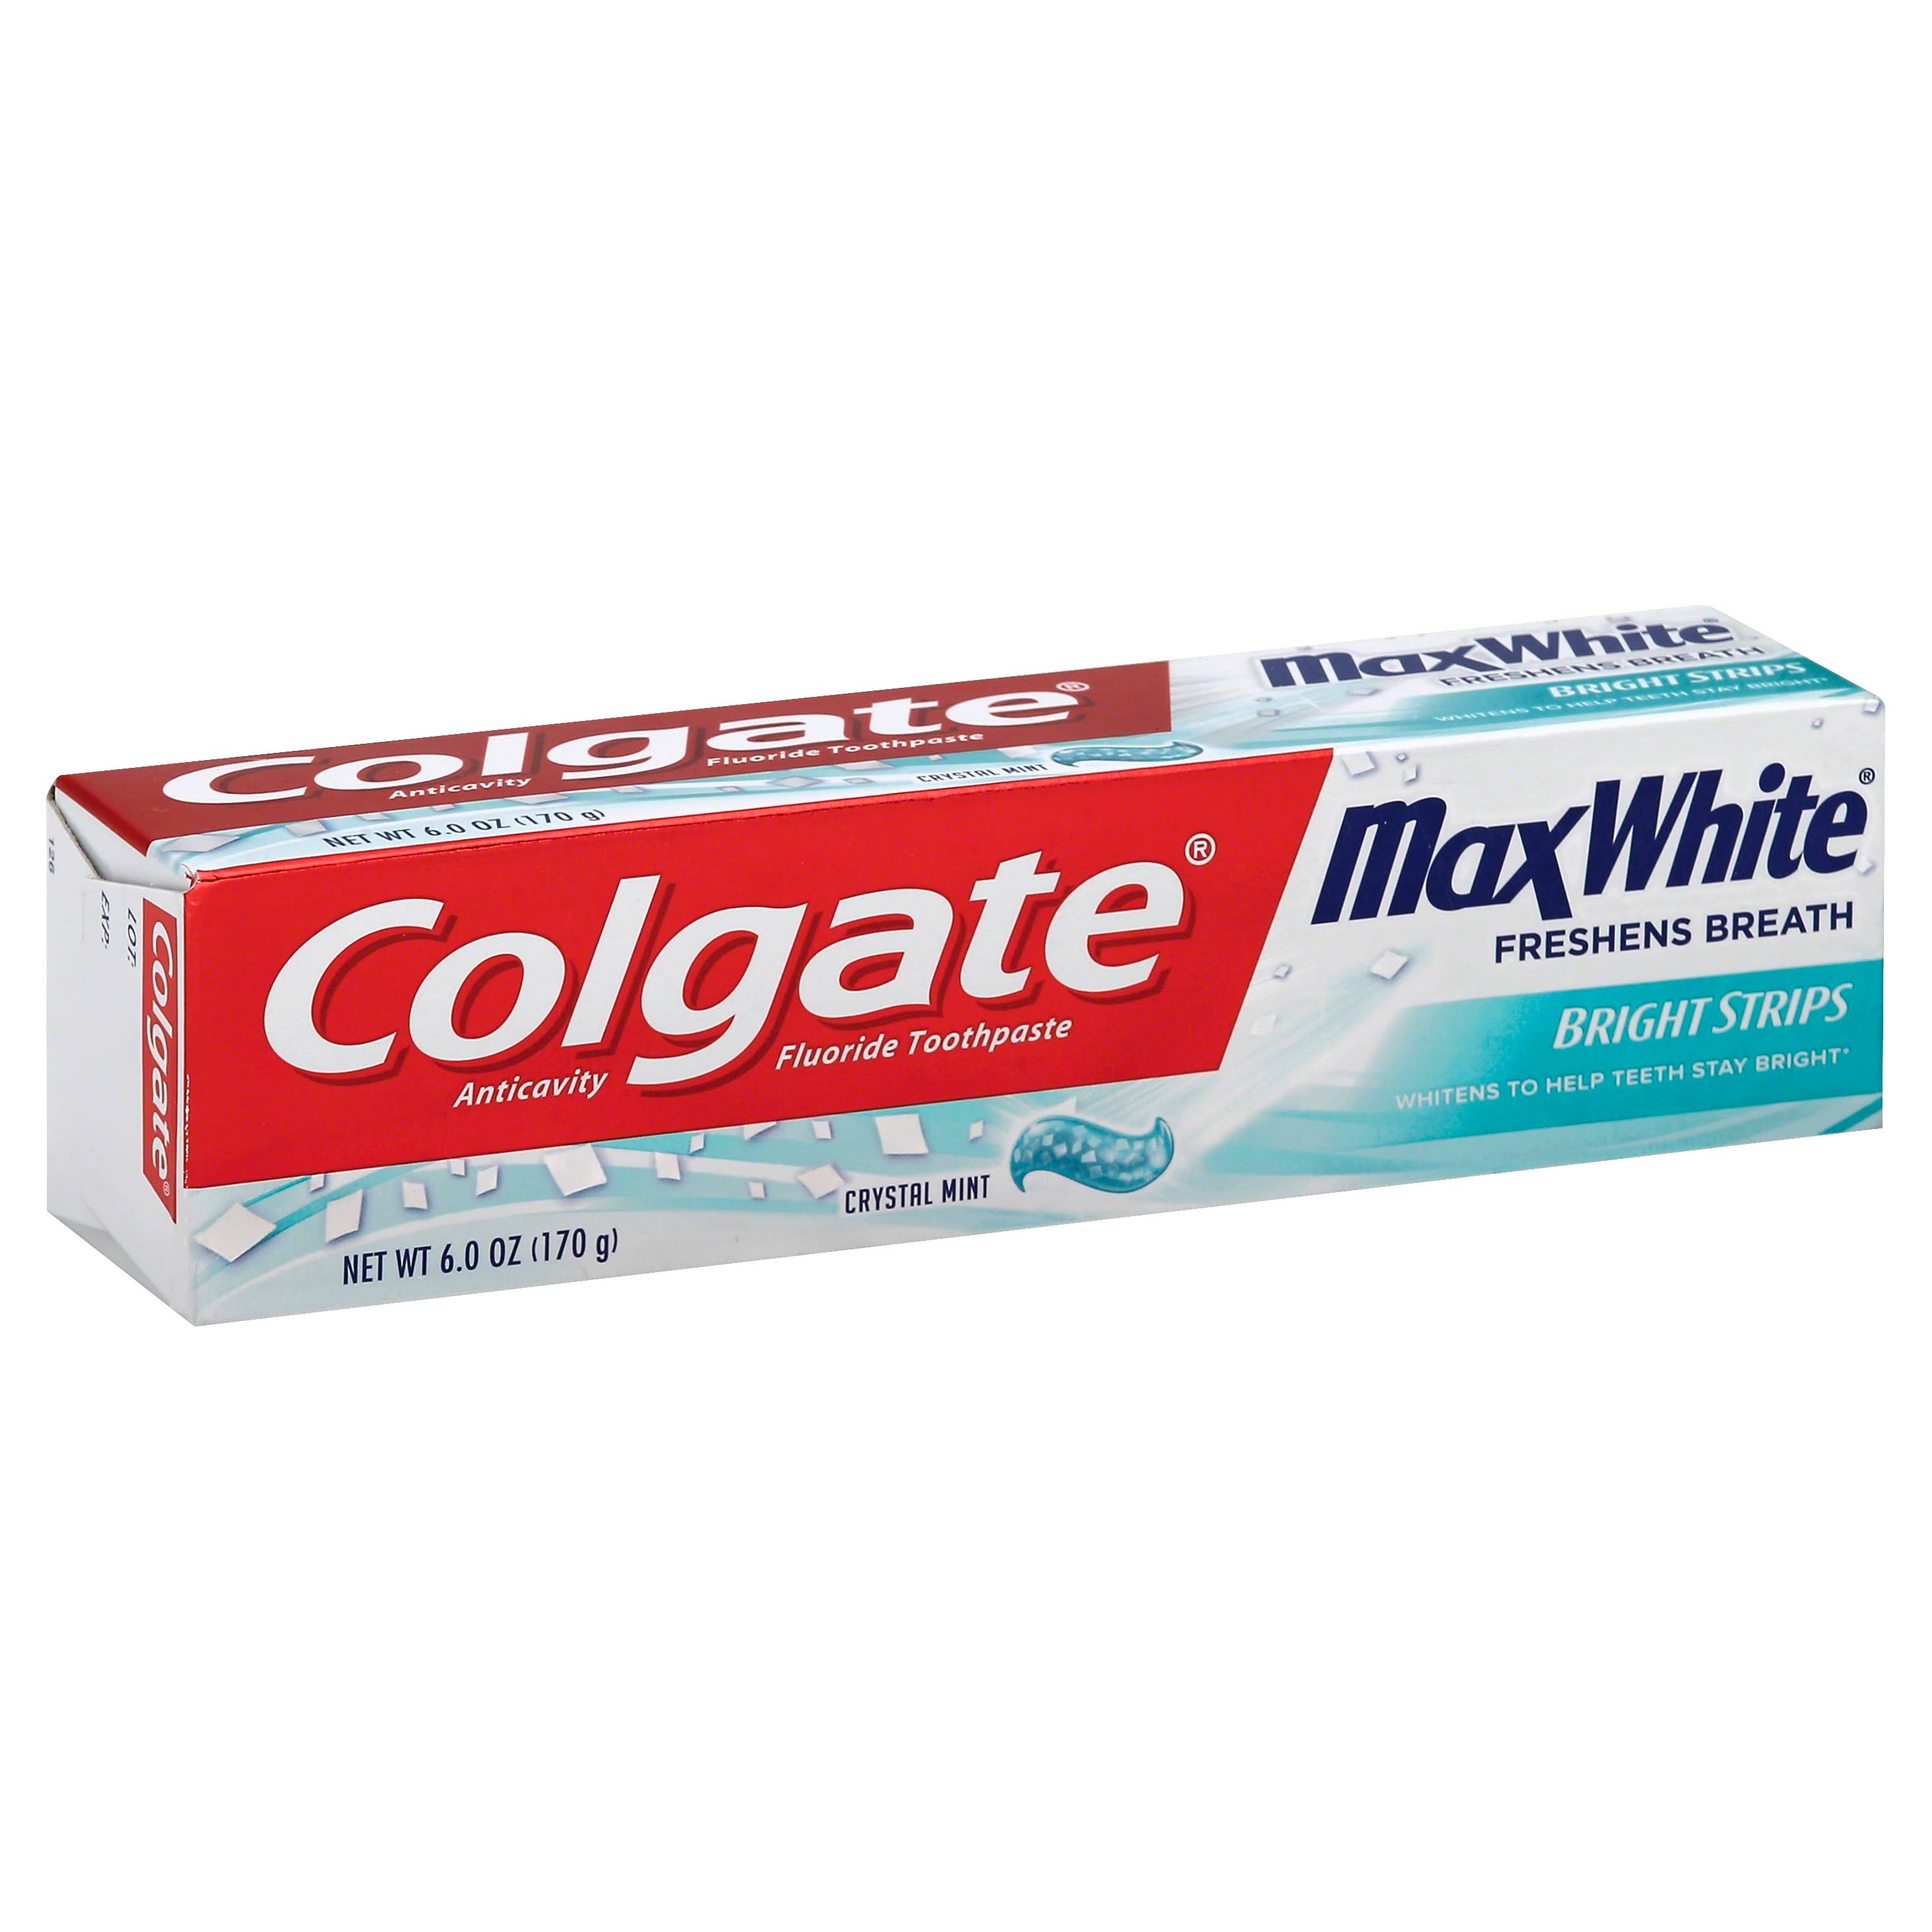 Colgate Max White with Mini Bright Strips Toothpaste - Crystal Mint, 6oz